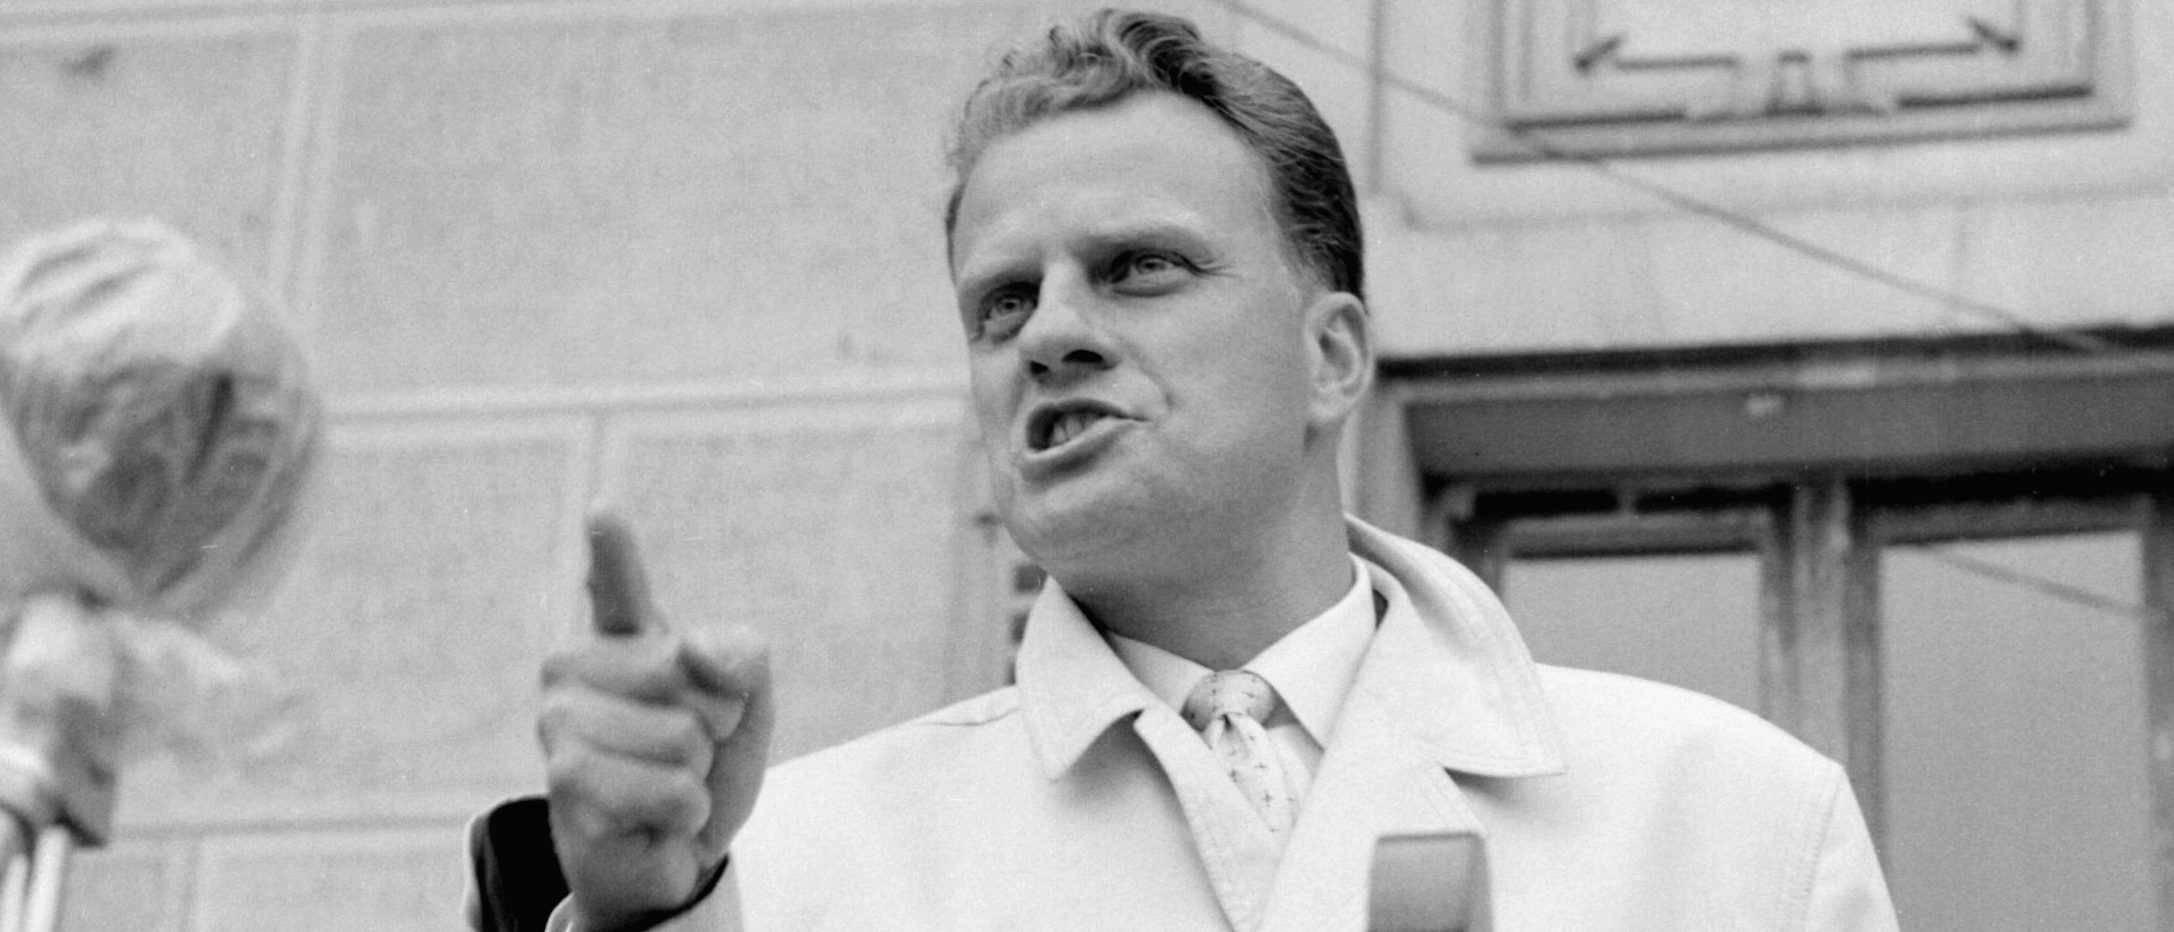 Billy Graham, the American evangelist, preaches in the 1960s in Paris. (Photo: AFP/Getty Images)